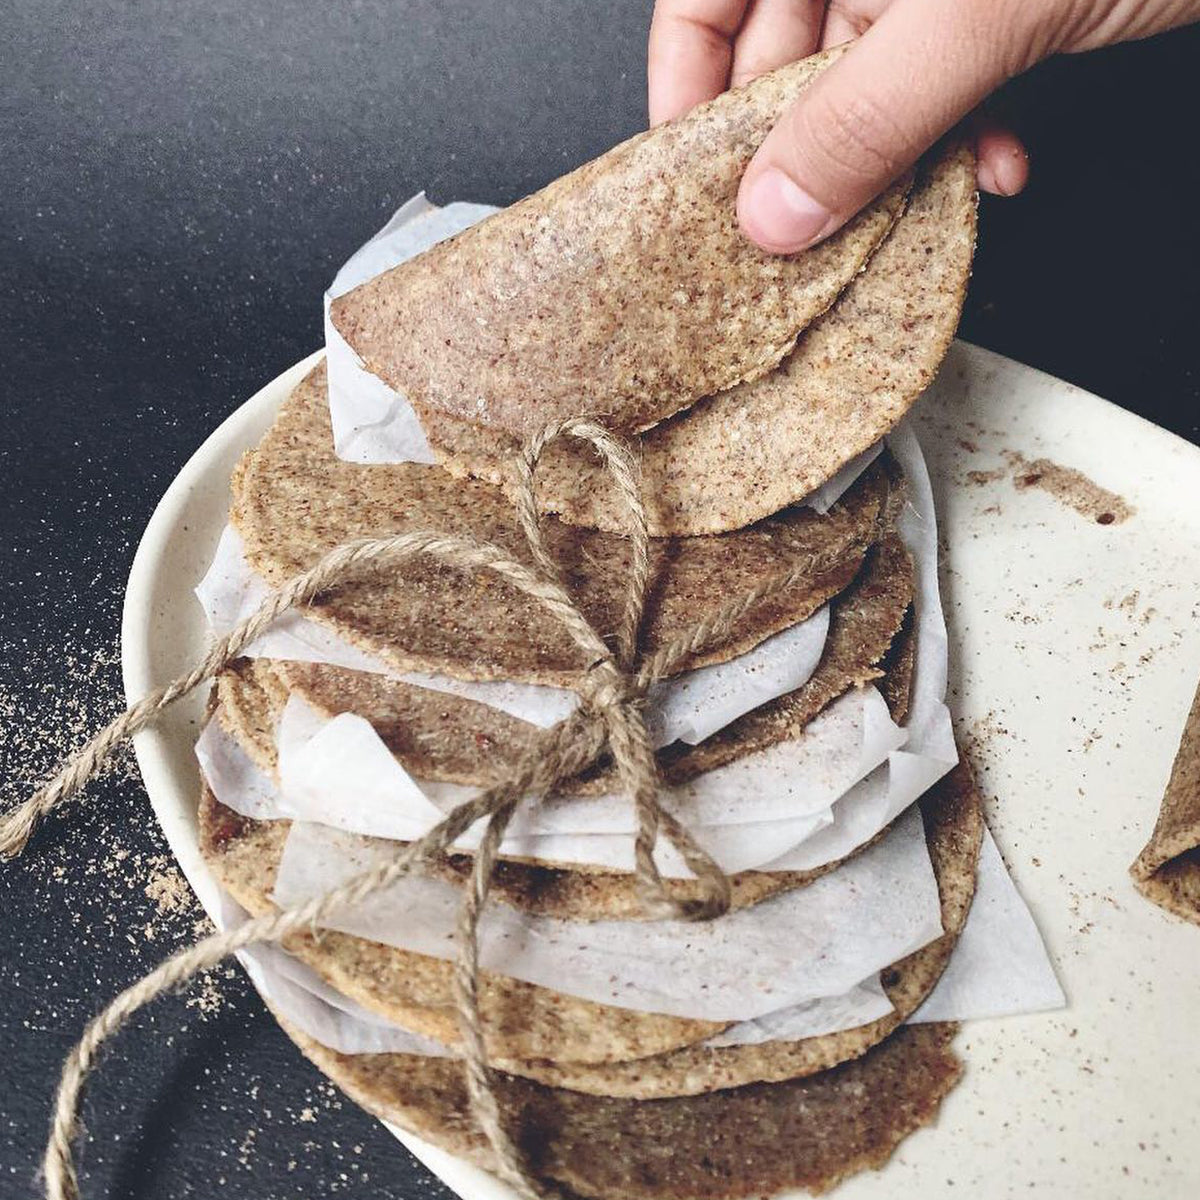 Keto Tortilla Wraps(20 Keto Tortilla Wraps)